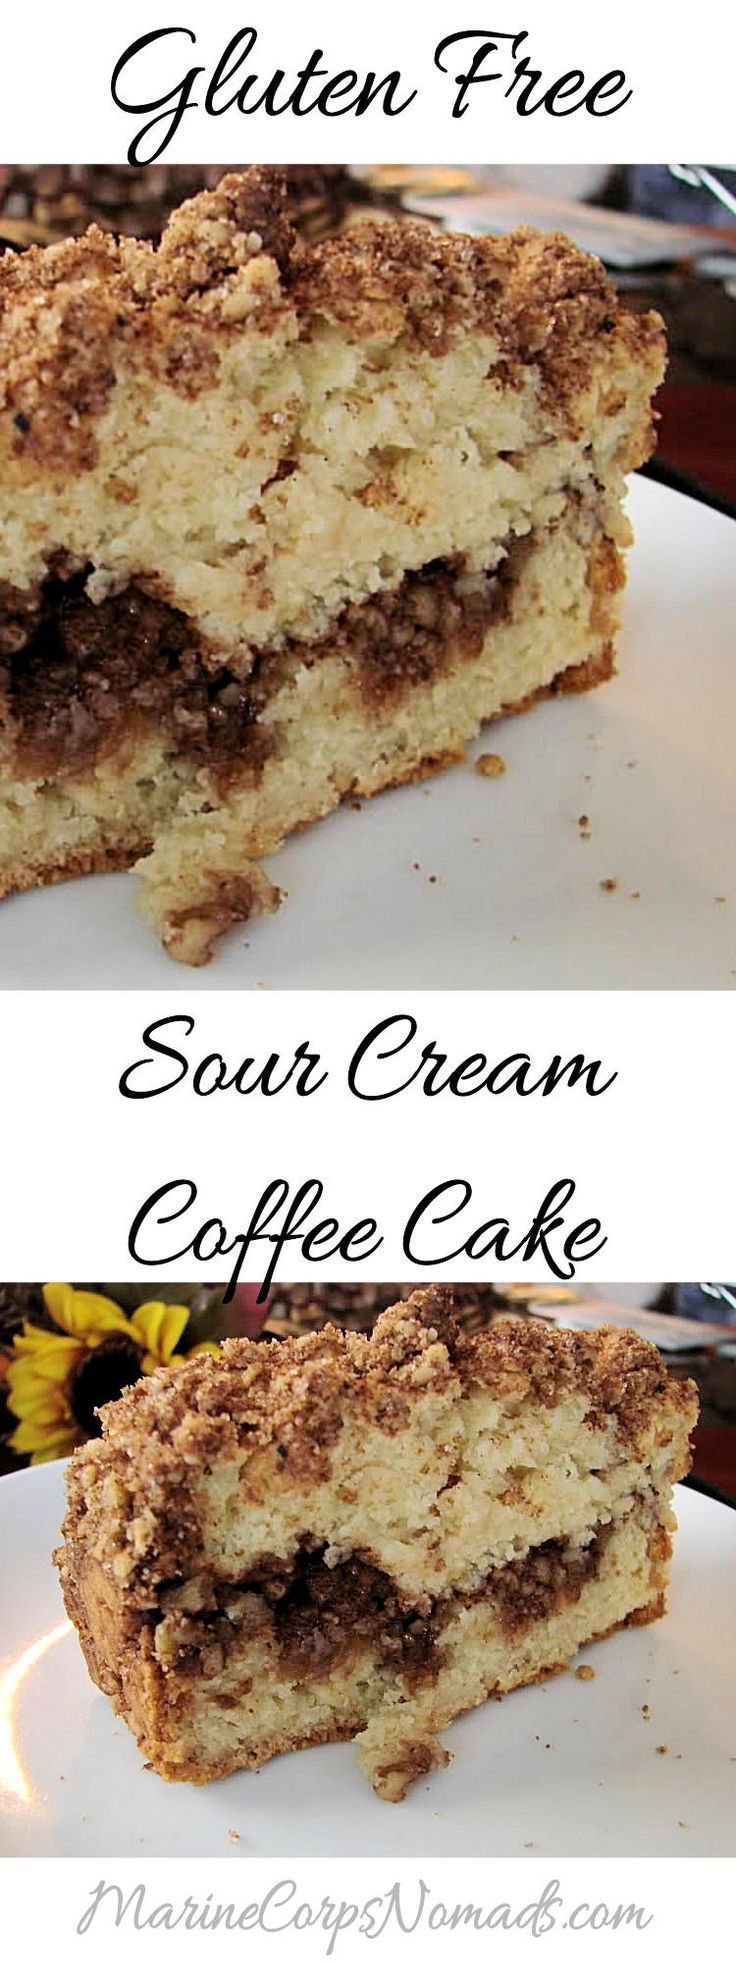 Gluten Free Sour Cream Coffee Cake | Breakfast | Marine Corps Nomads